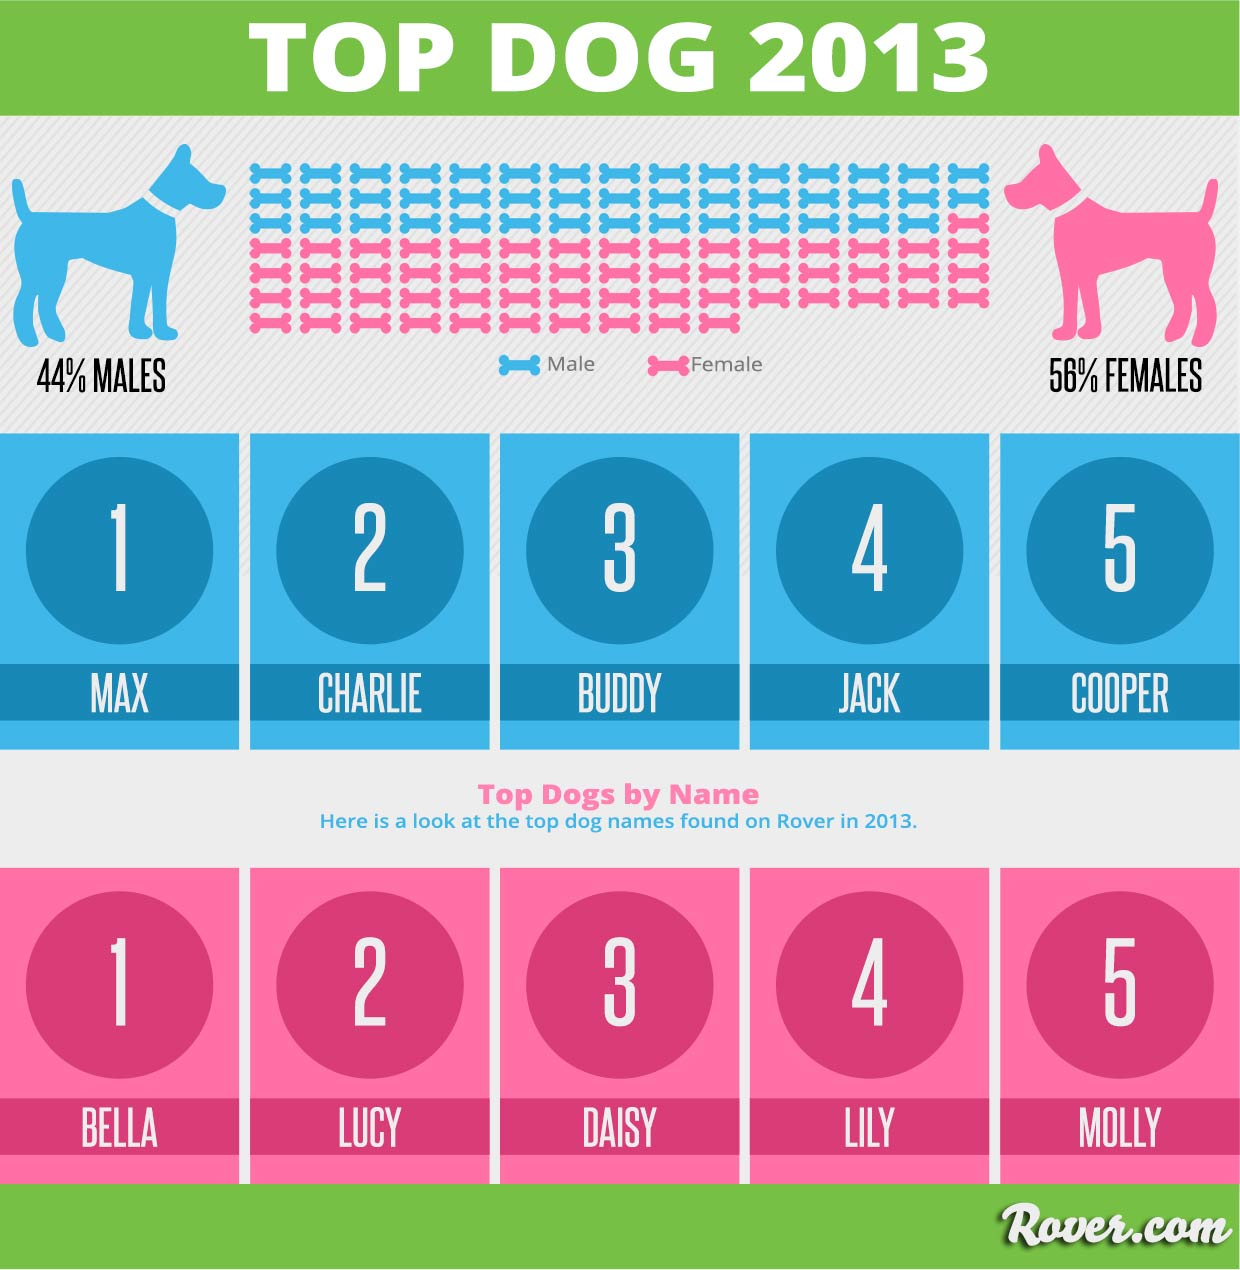 Max And Bella Are The Most Popular Dog Names In 2013